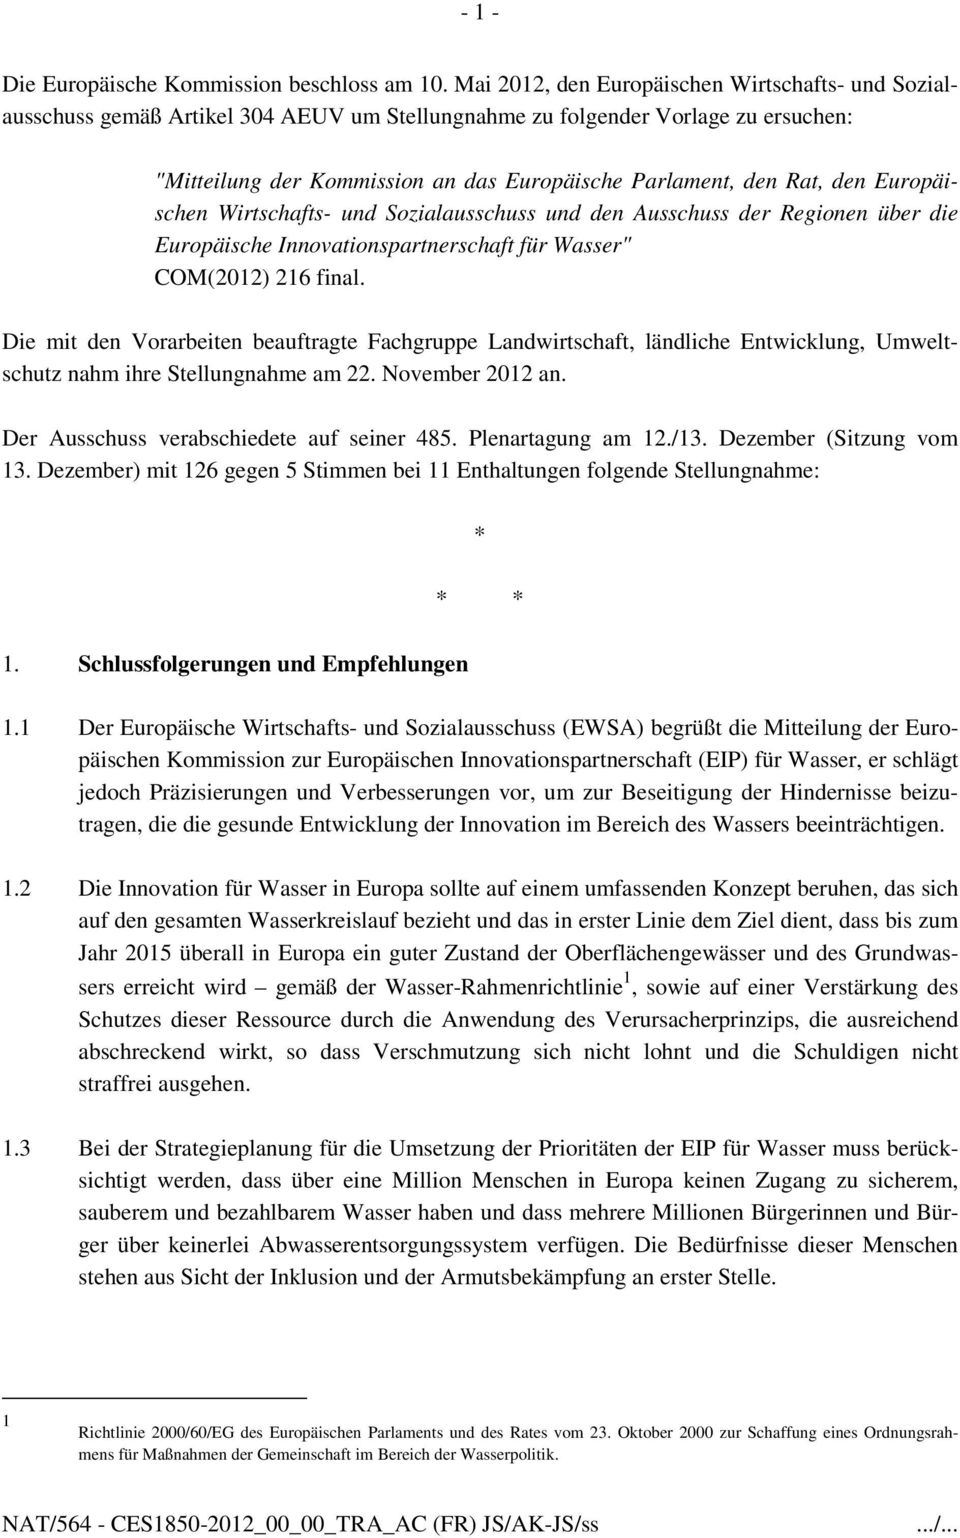 Großzügig Equity Forschungsvorlage Ideen - Entry Level Resume ...